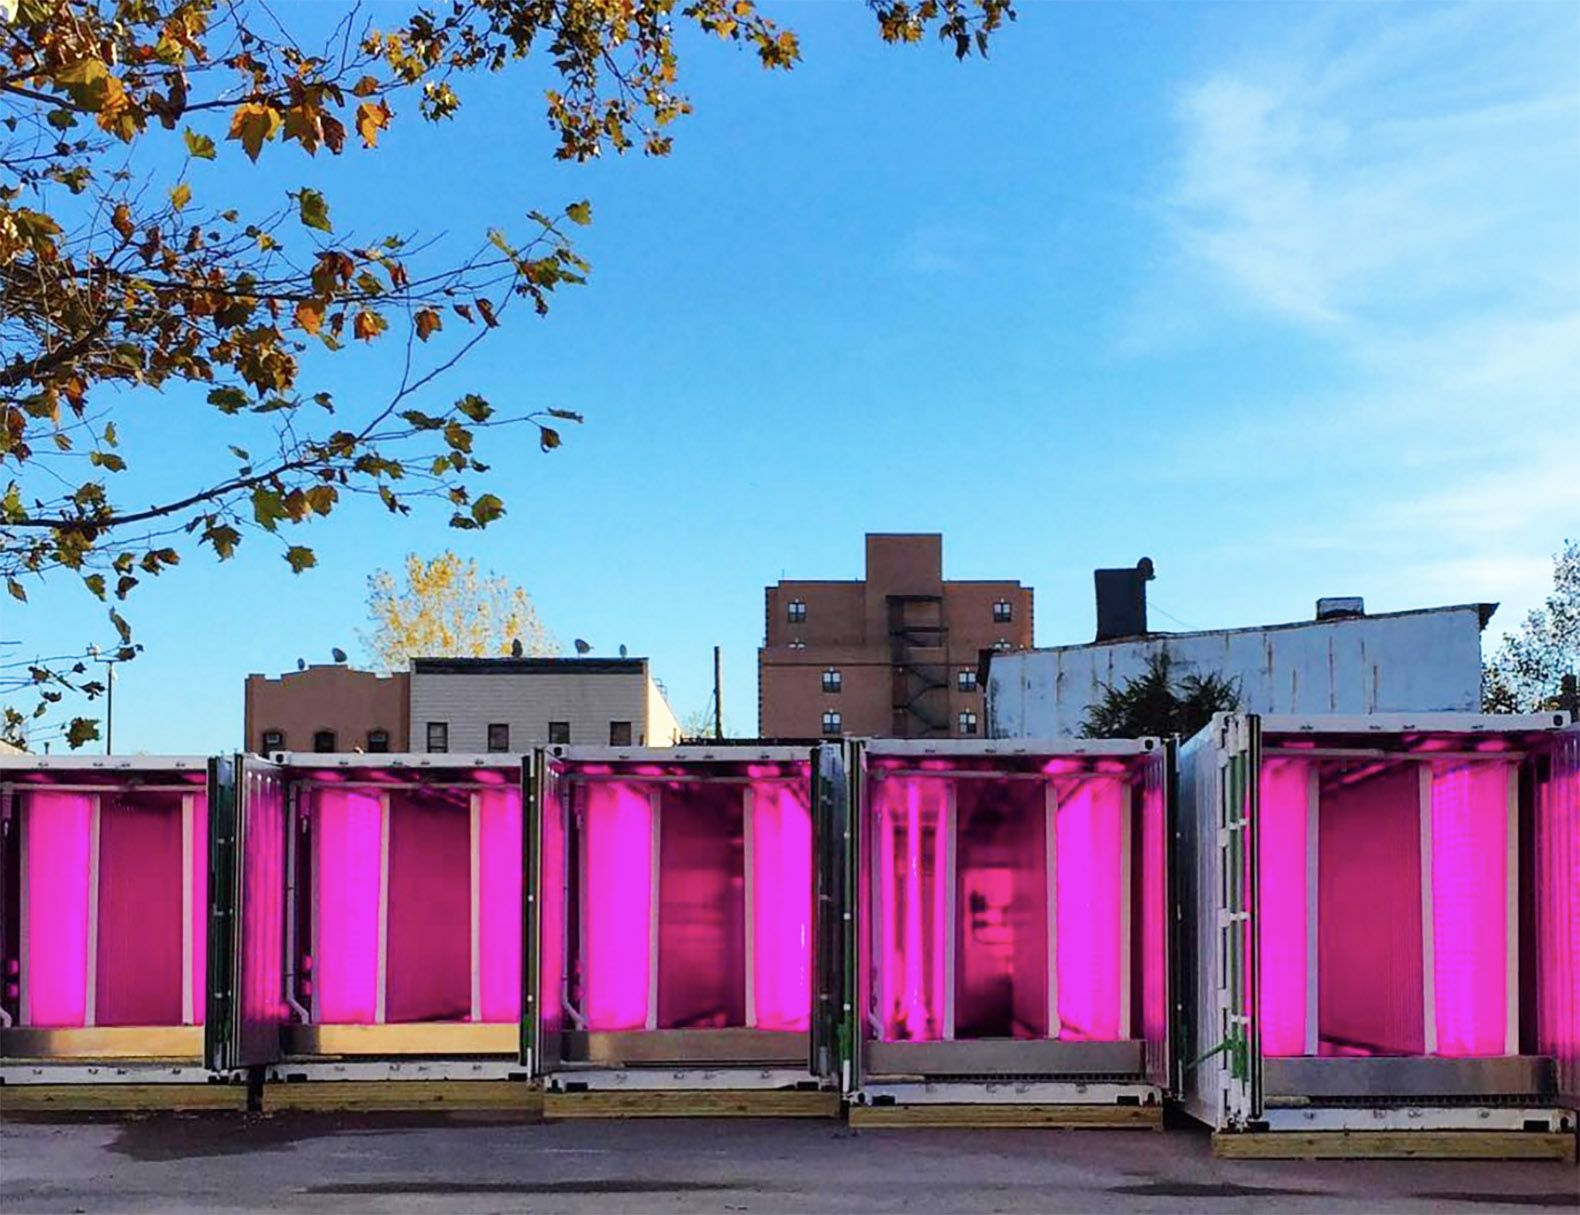 Kimbal Musk Launches A Revolutionary Shipping Container Farm Initiative In Brooklyn Urban Farming Urban Farmer Vertical Farming